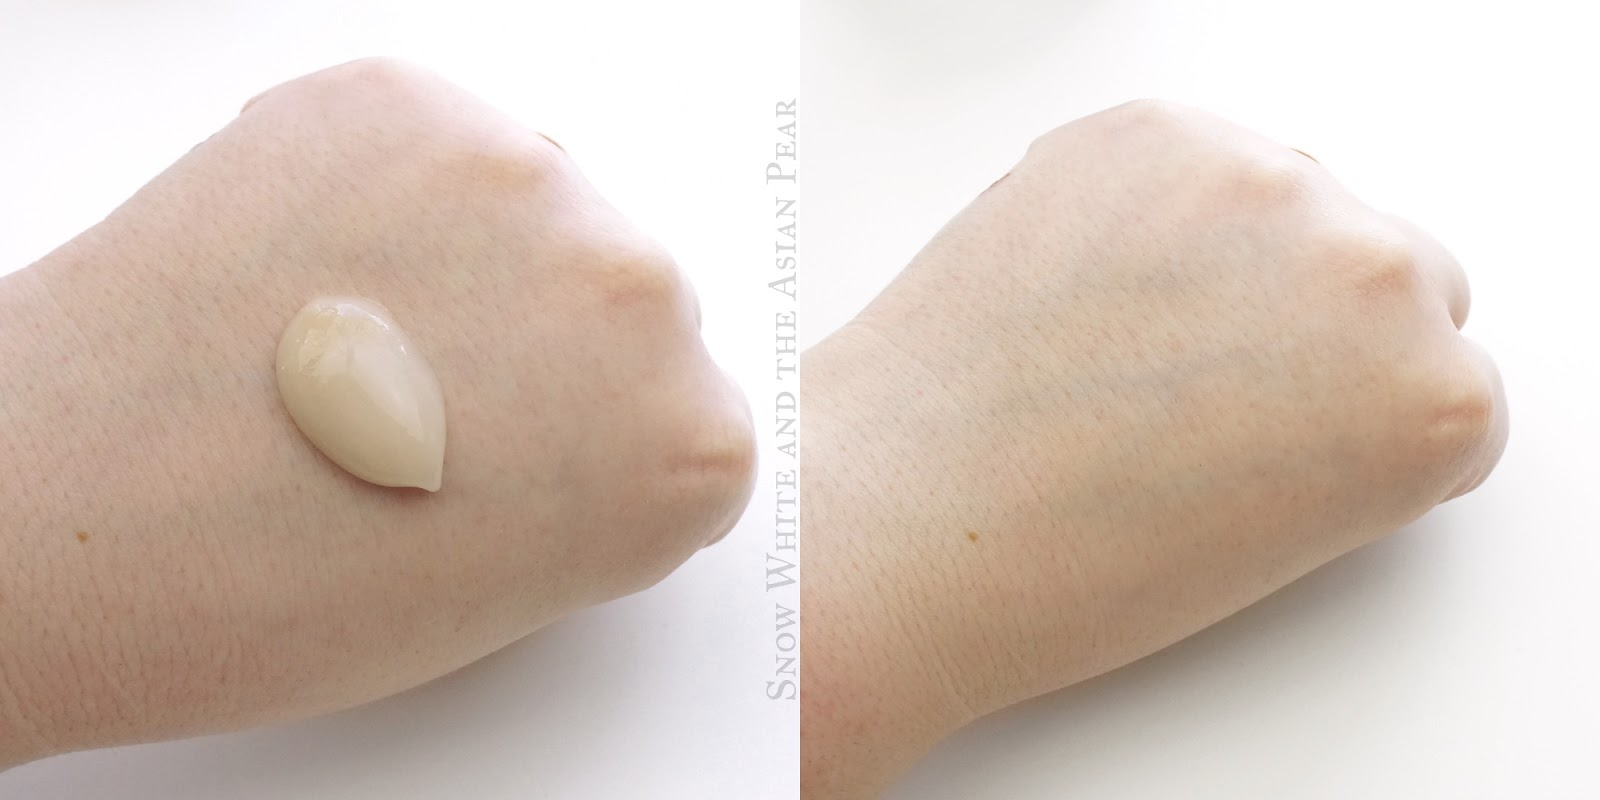 Review Illi Total Aging Care Body Lotion I Kinda Hate You But Its Prime Skin Hand And